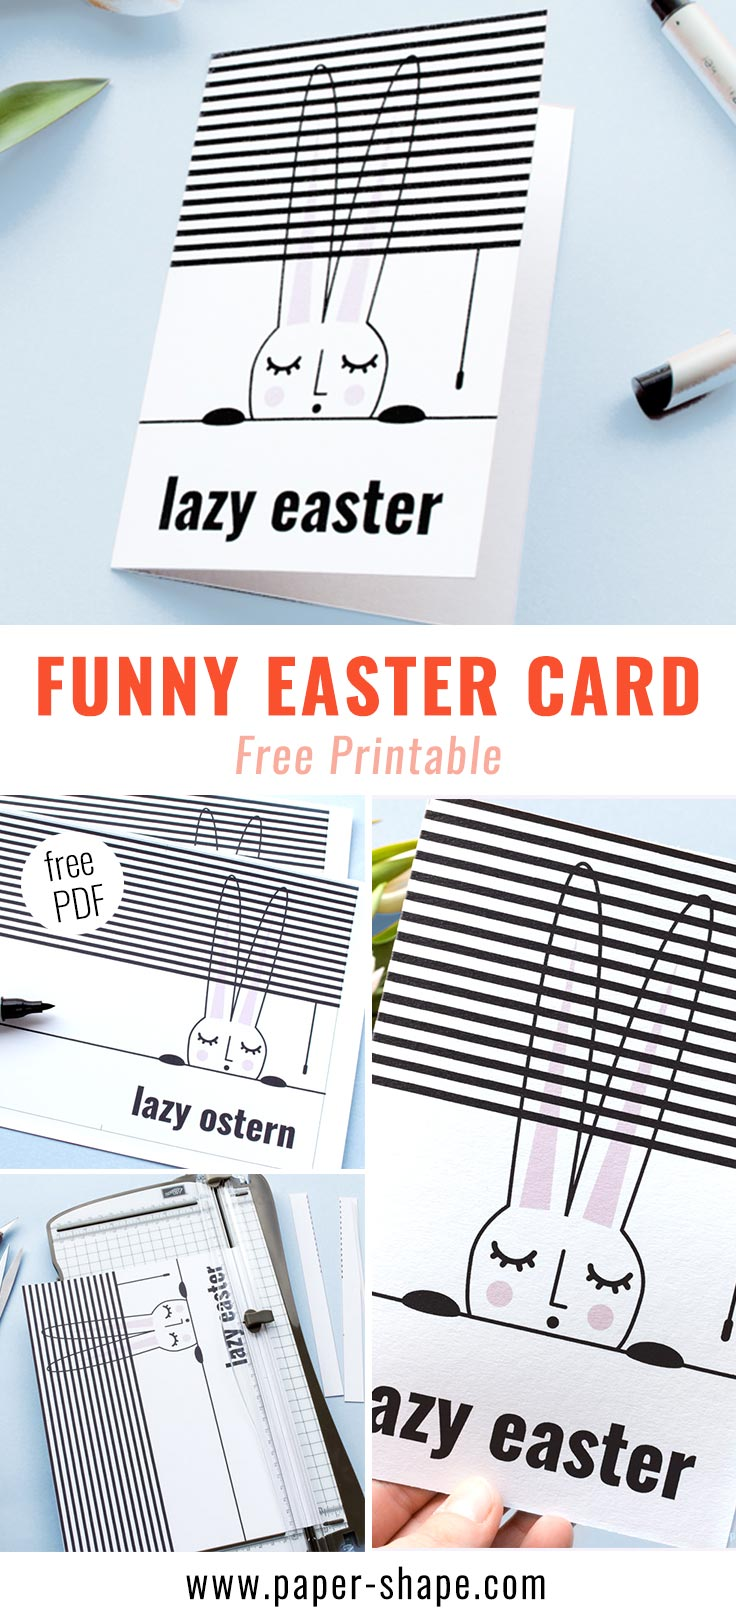 Handmade funny Easter card with free template./ PaperShape #eastergreetingcards #easter #papercraft #diy #papershape